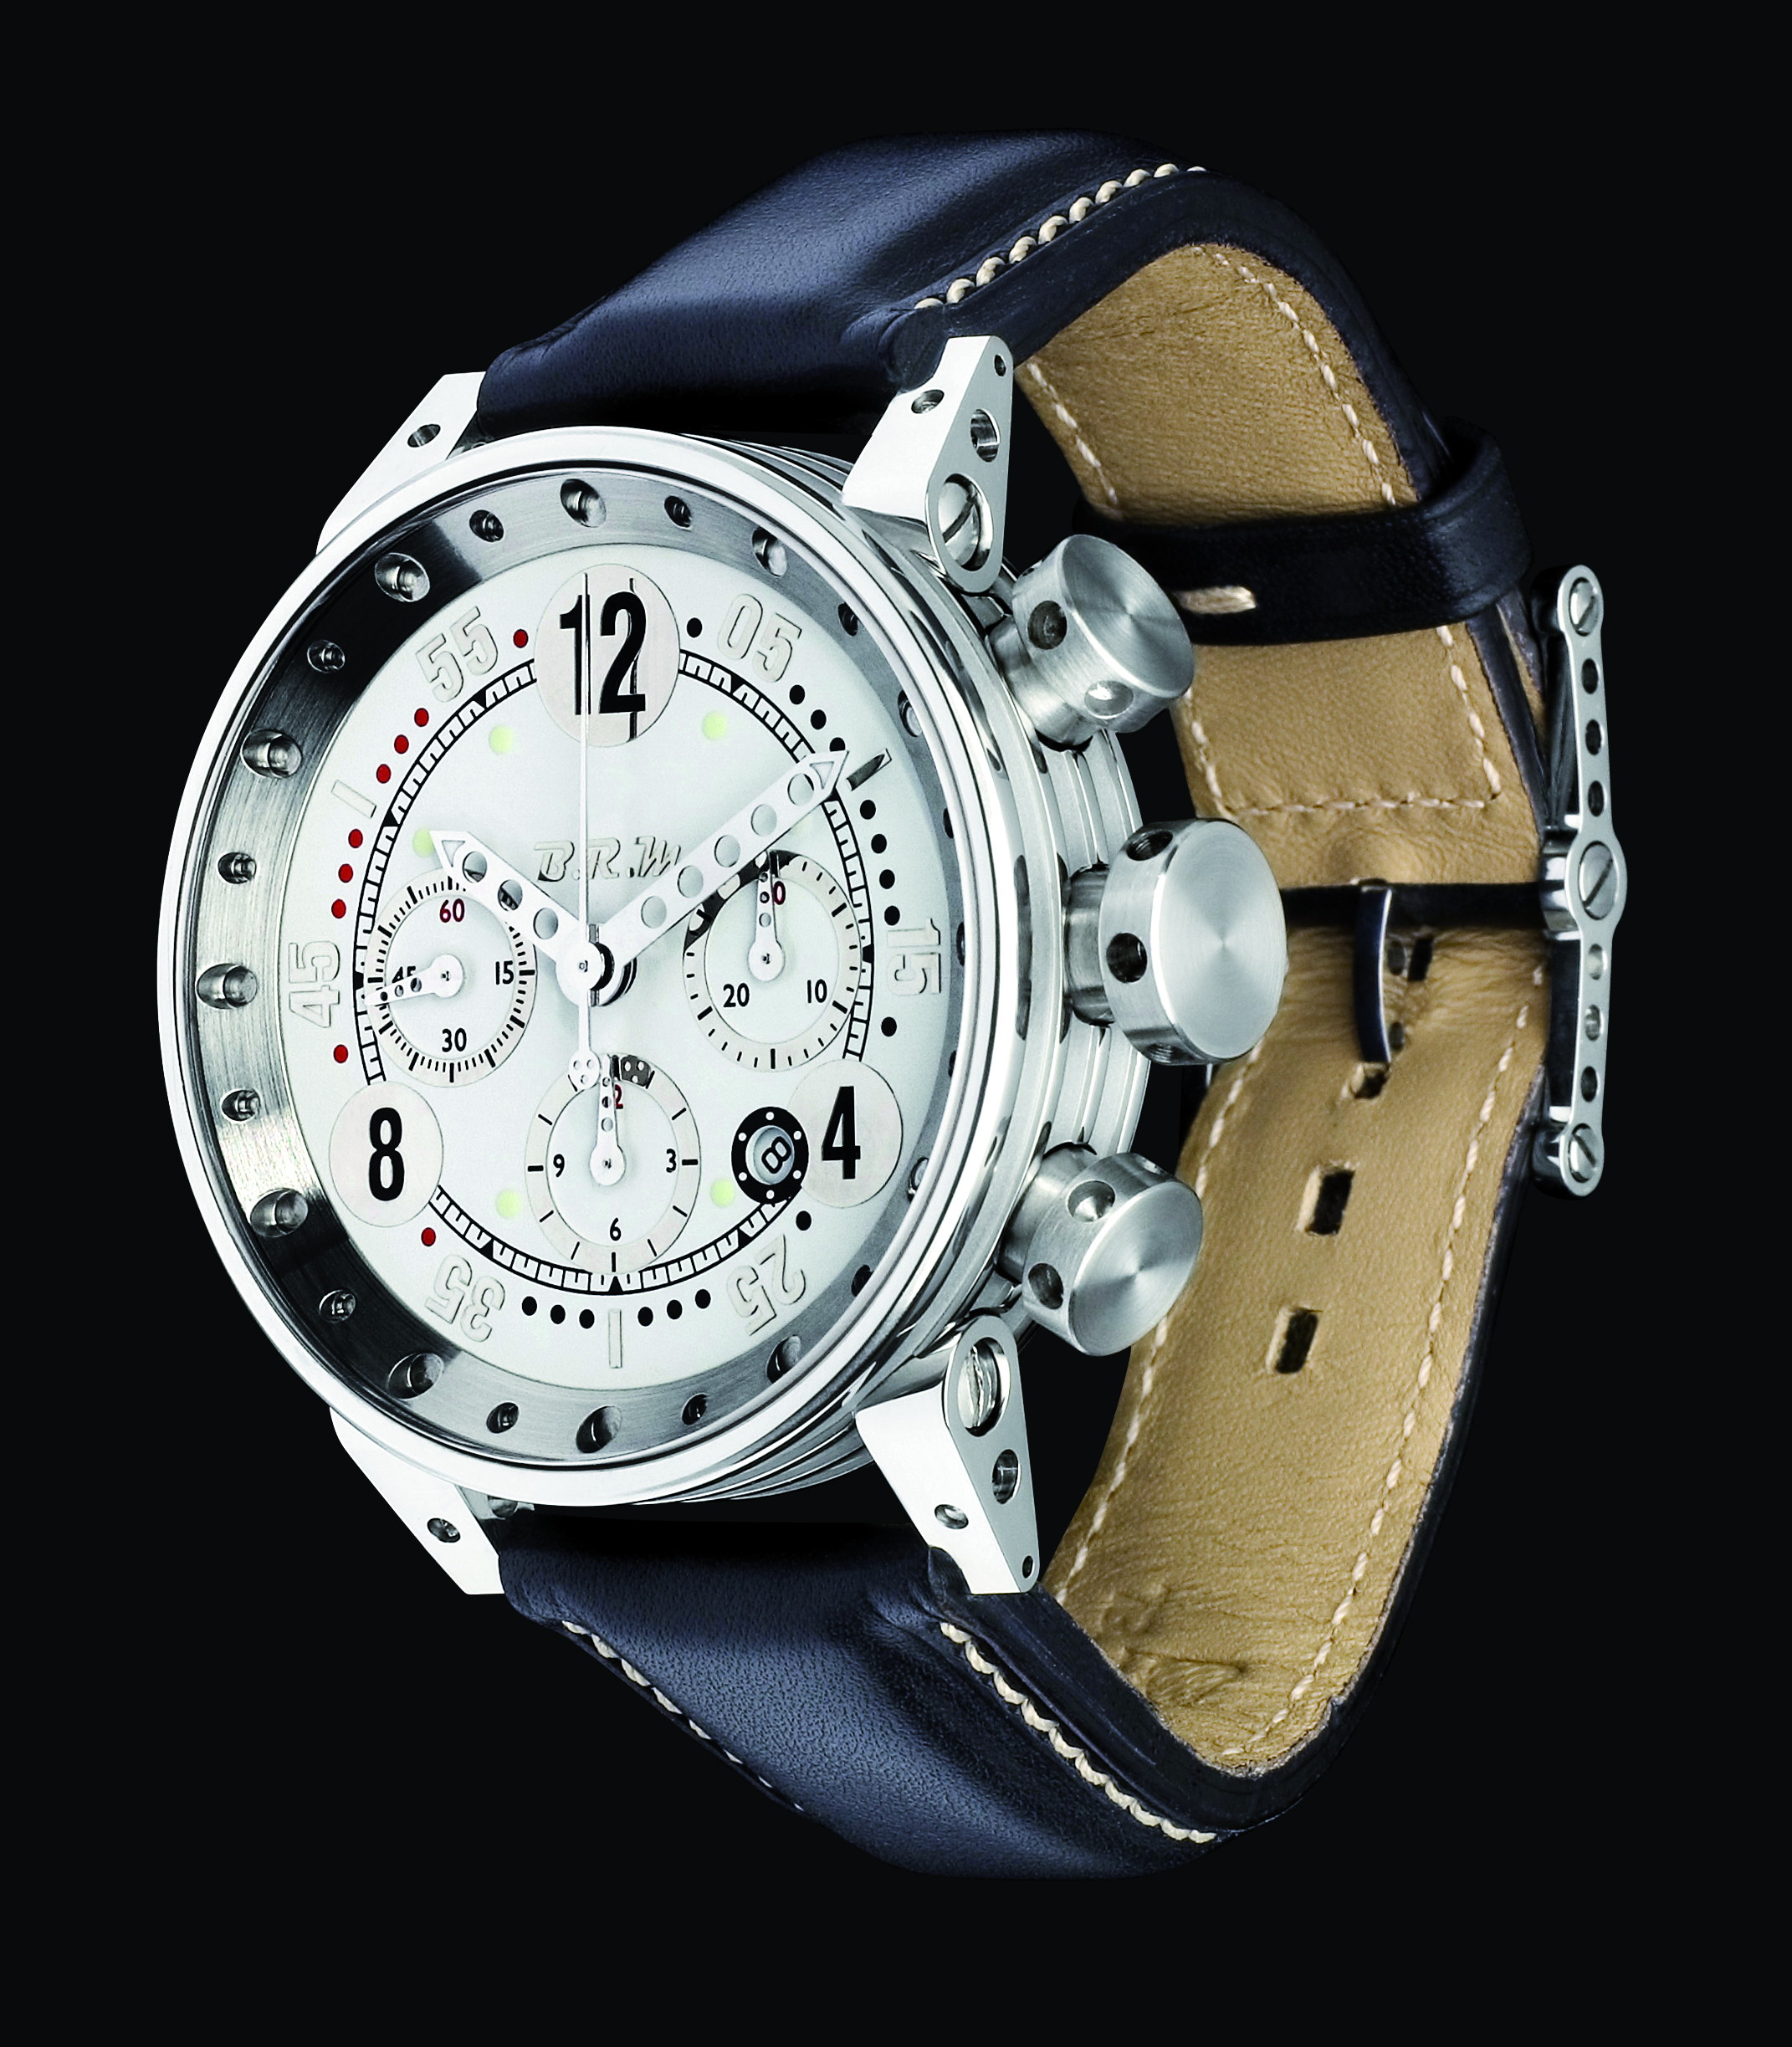 BRM V12-44 celebrates its 10th anniversary with customizable watches